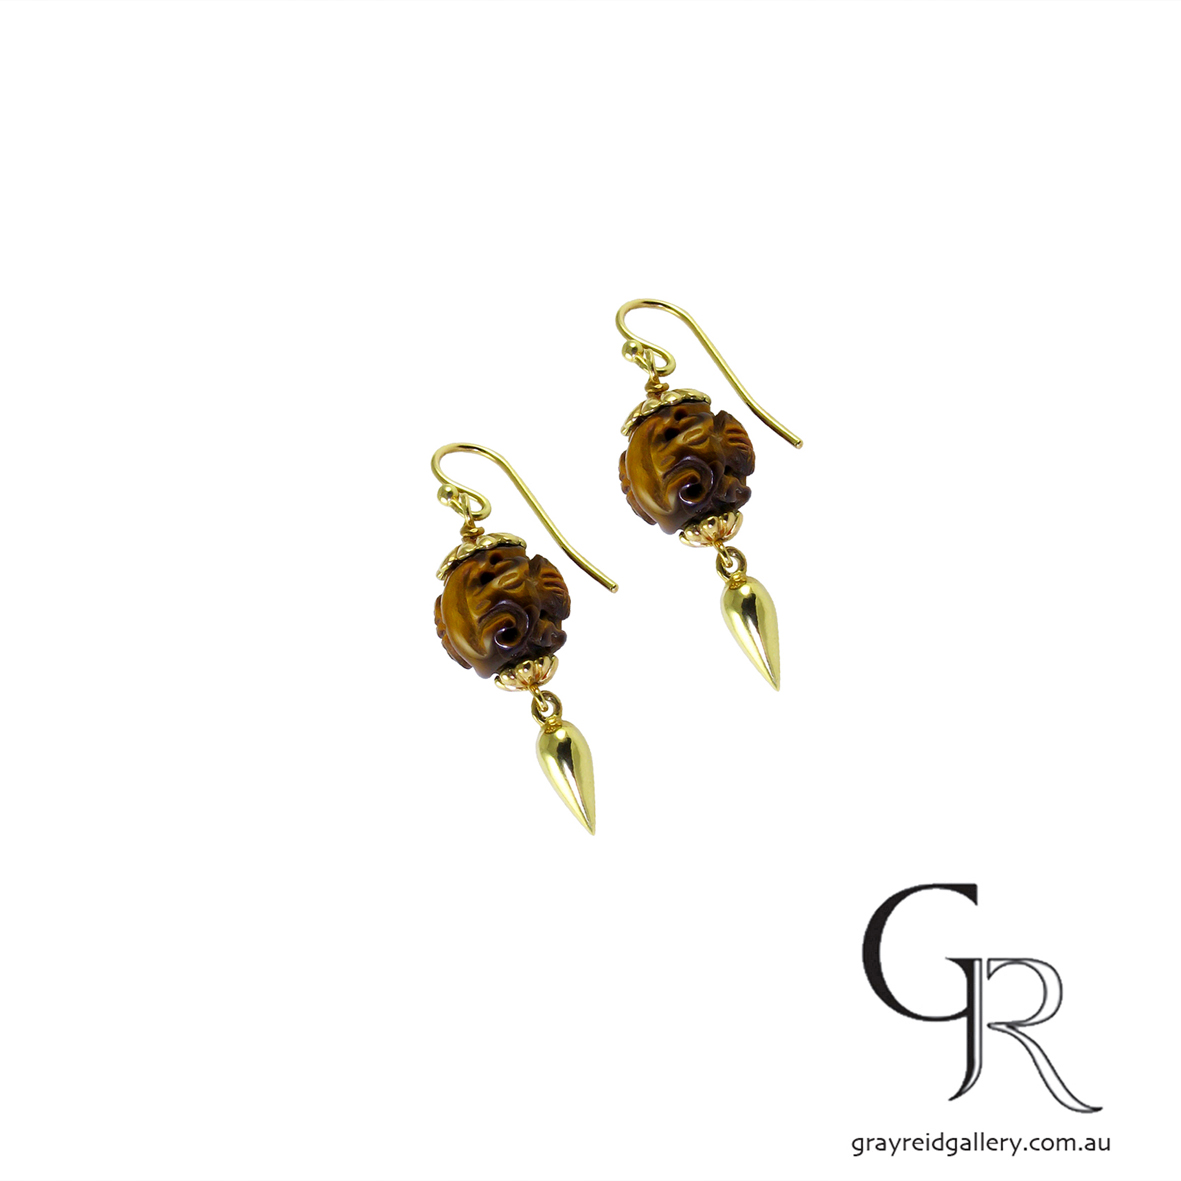 Carved Tiger Eye Earrings in Yellow Gold